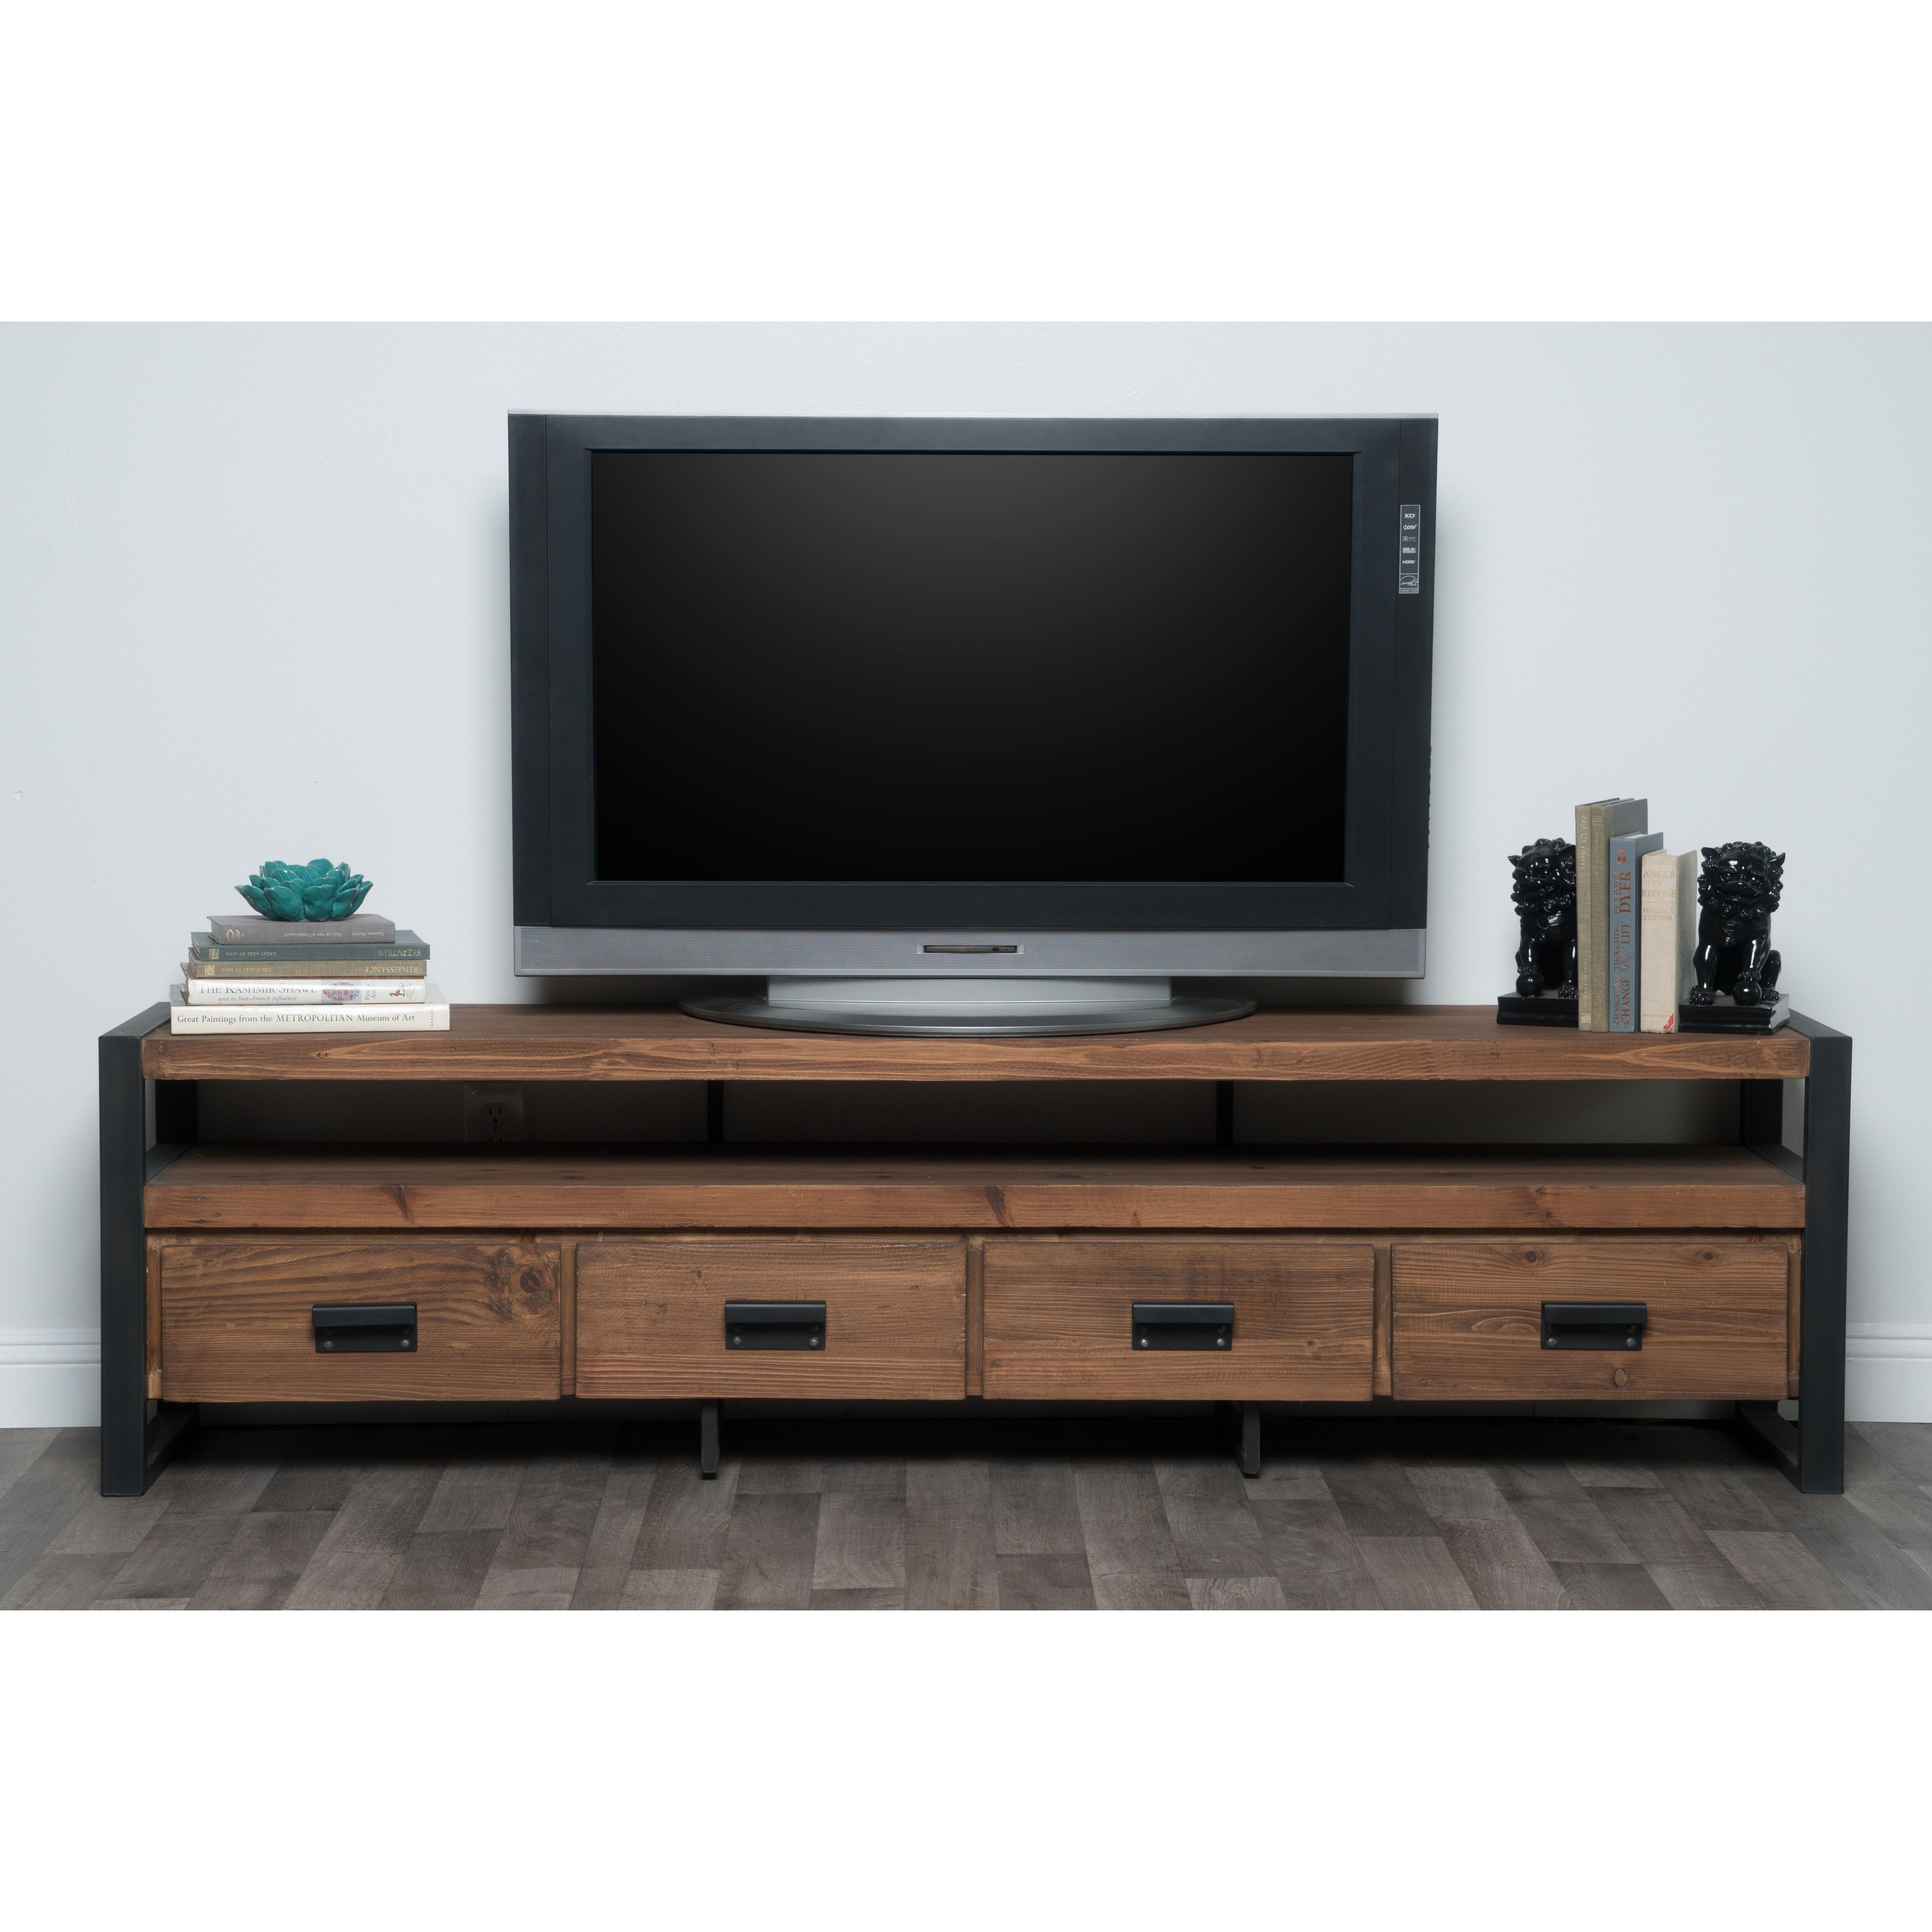 Kosas Home Cohoes Tv Stand Basement Decor In 2018 Pinterest